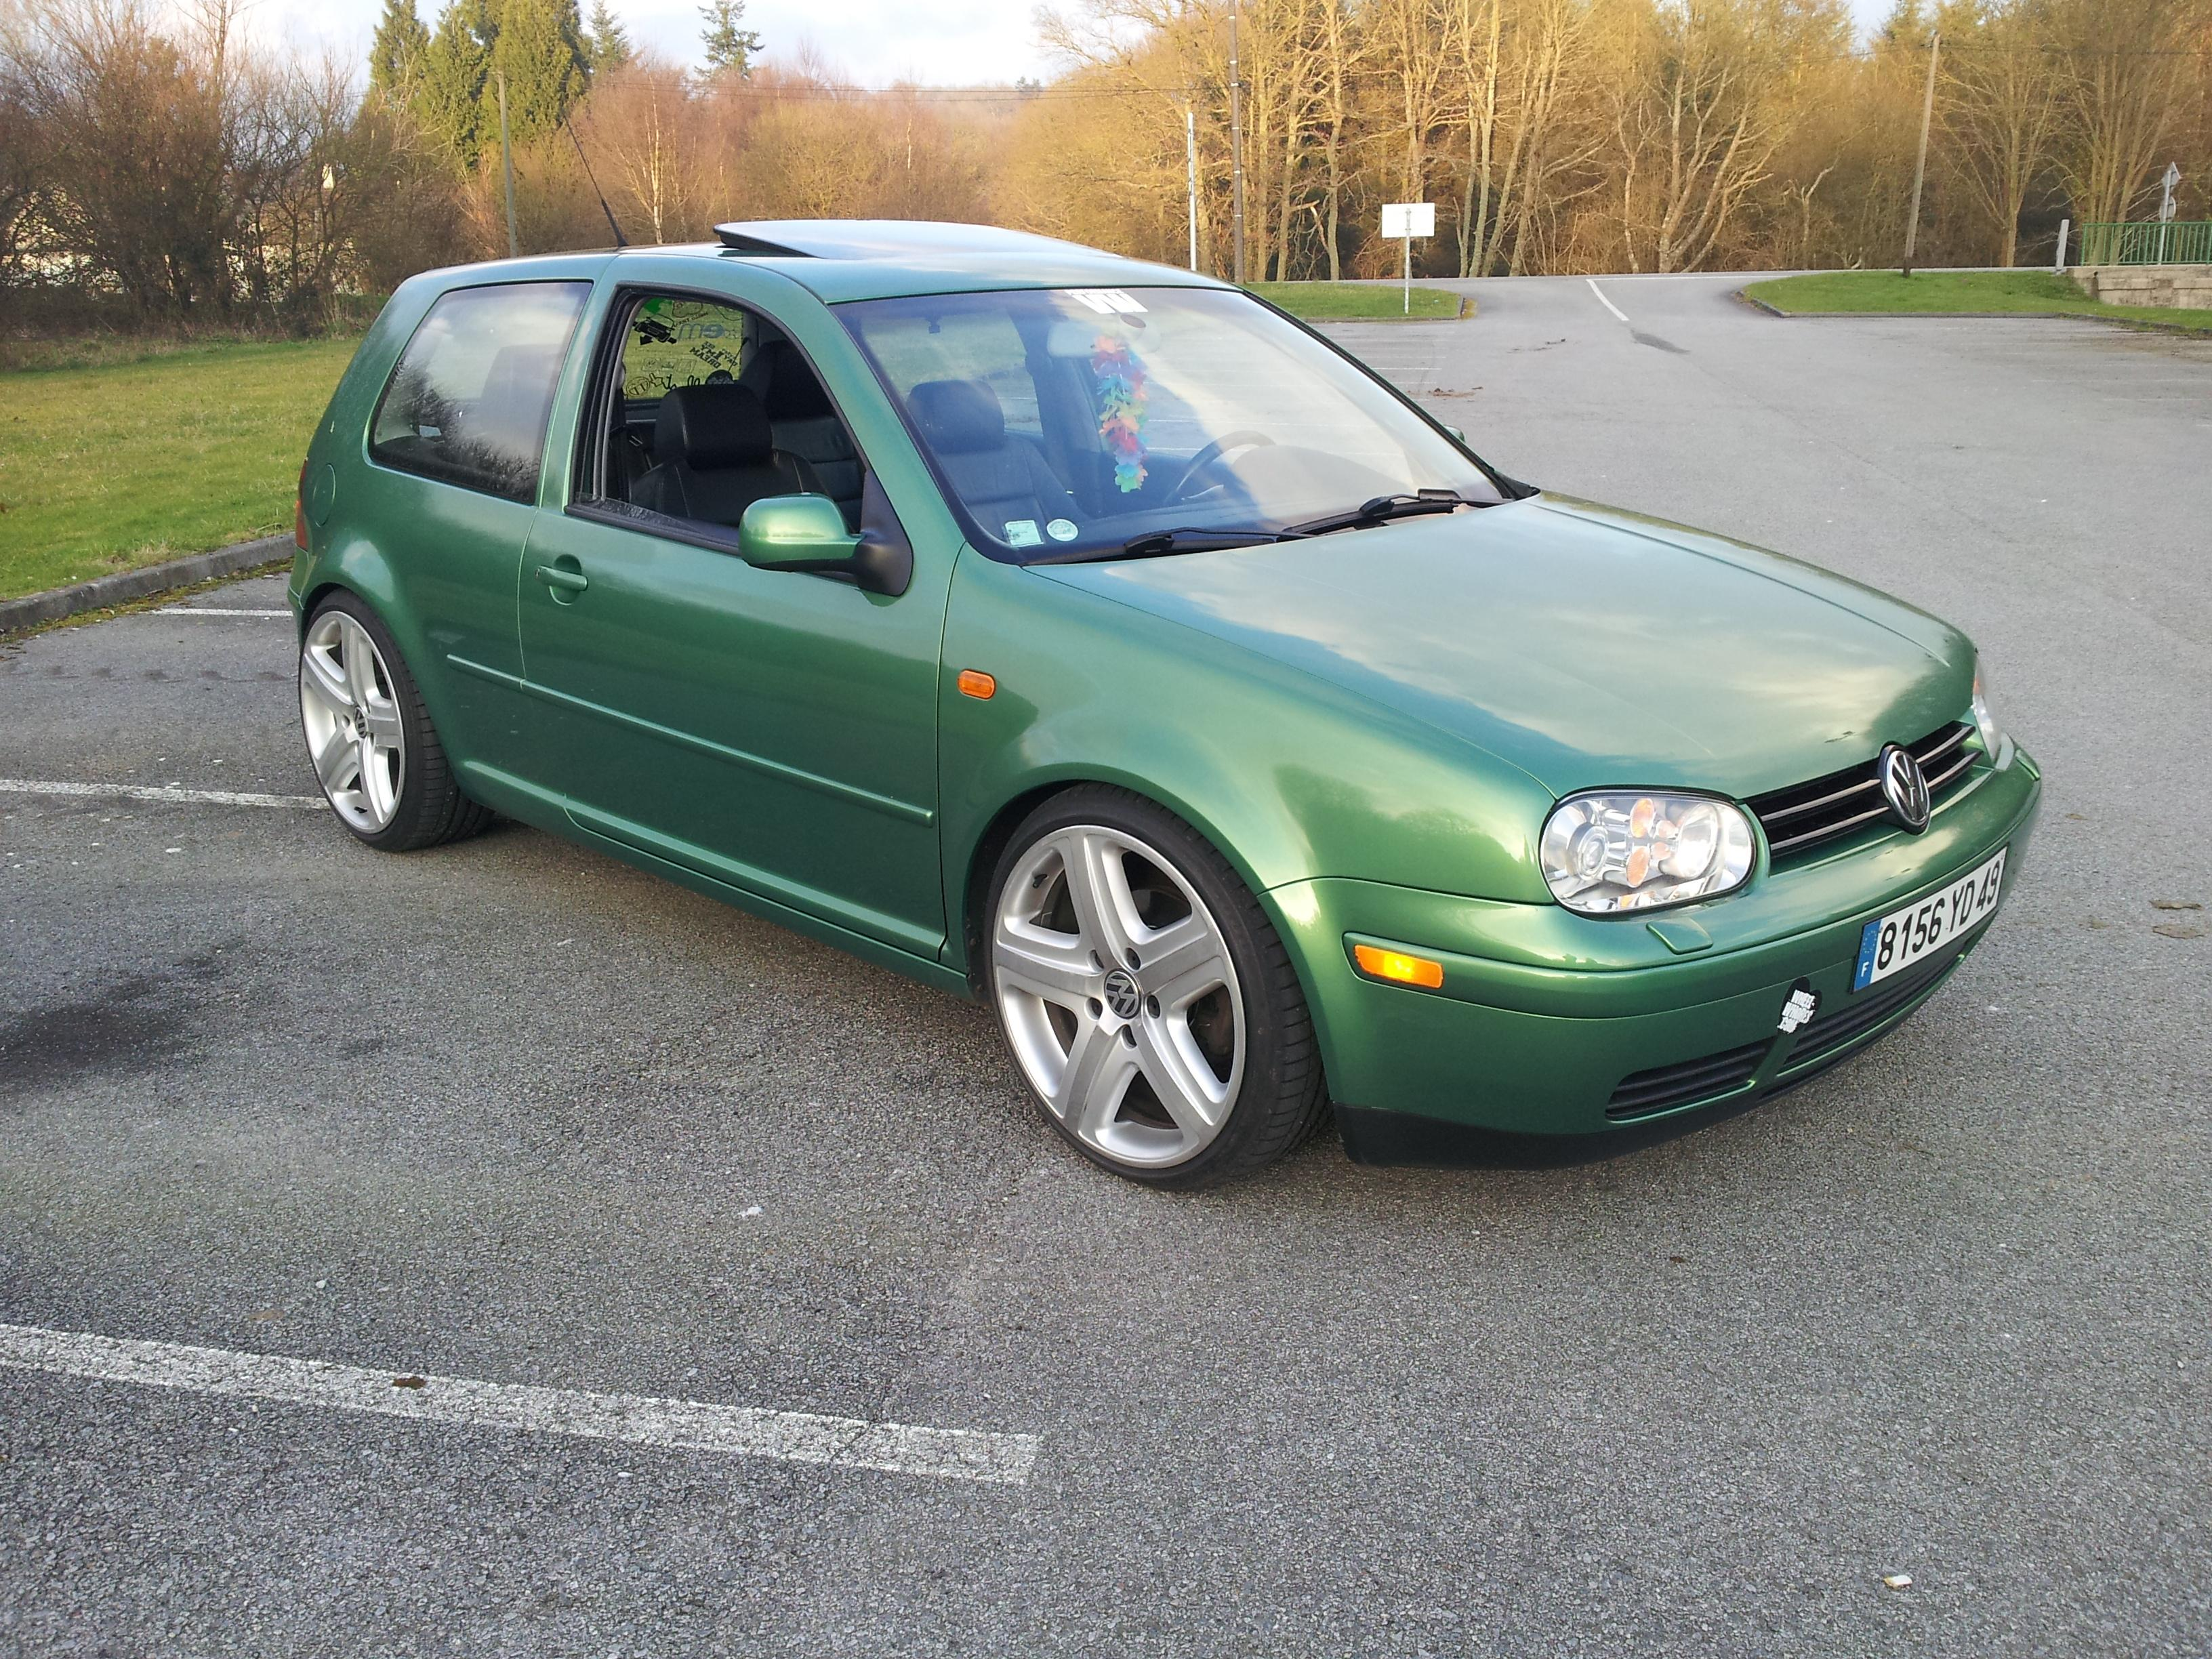 golf iv gti tdi 150 verte de blackgolf56  photos p4